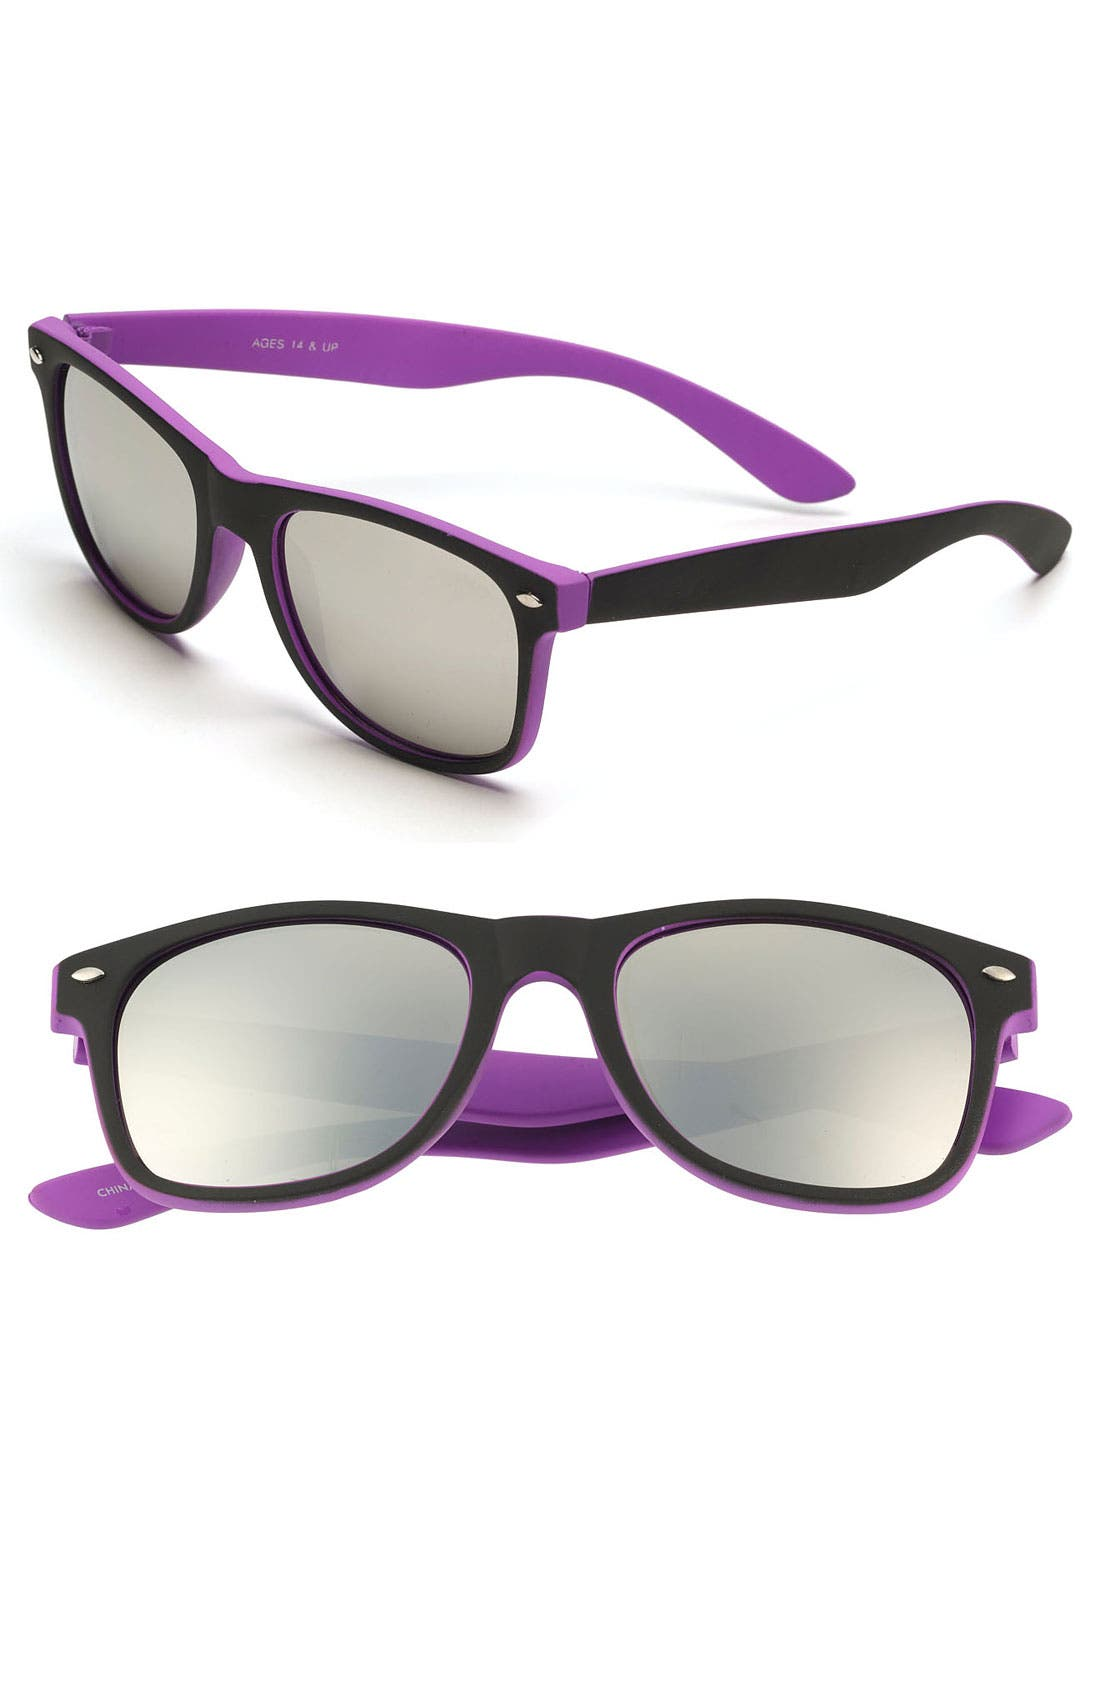 Alternate Image 1 Selected - FE NY 'Bystander' Sunglasses